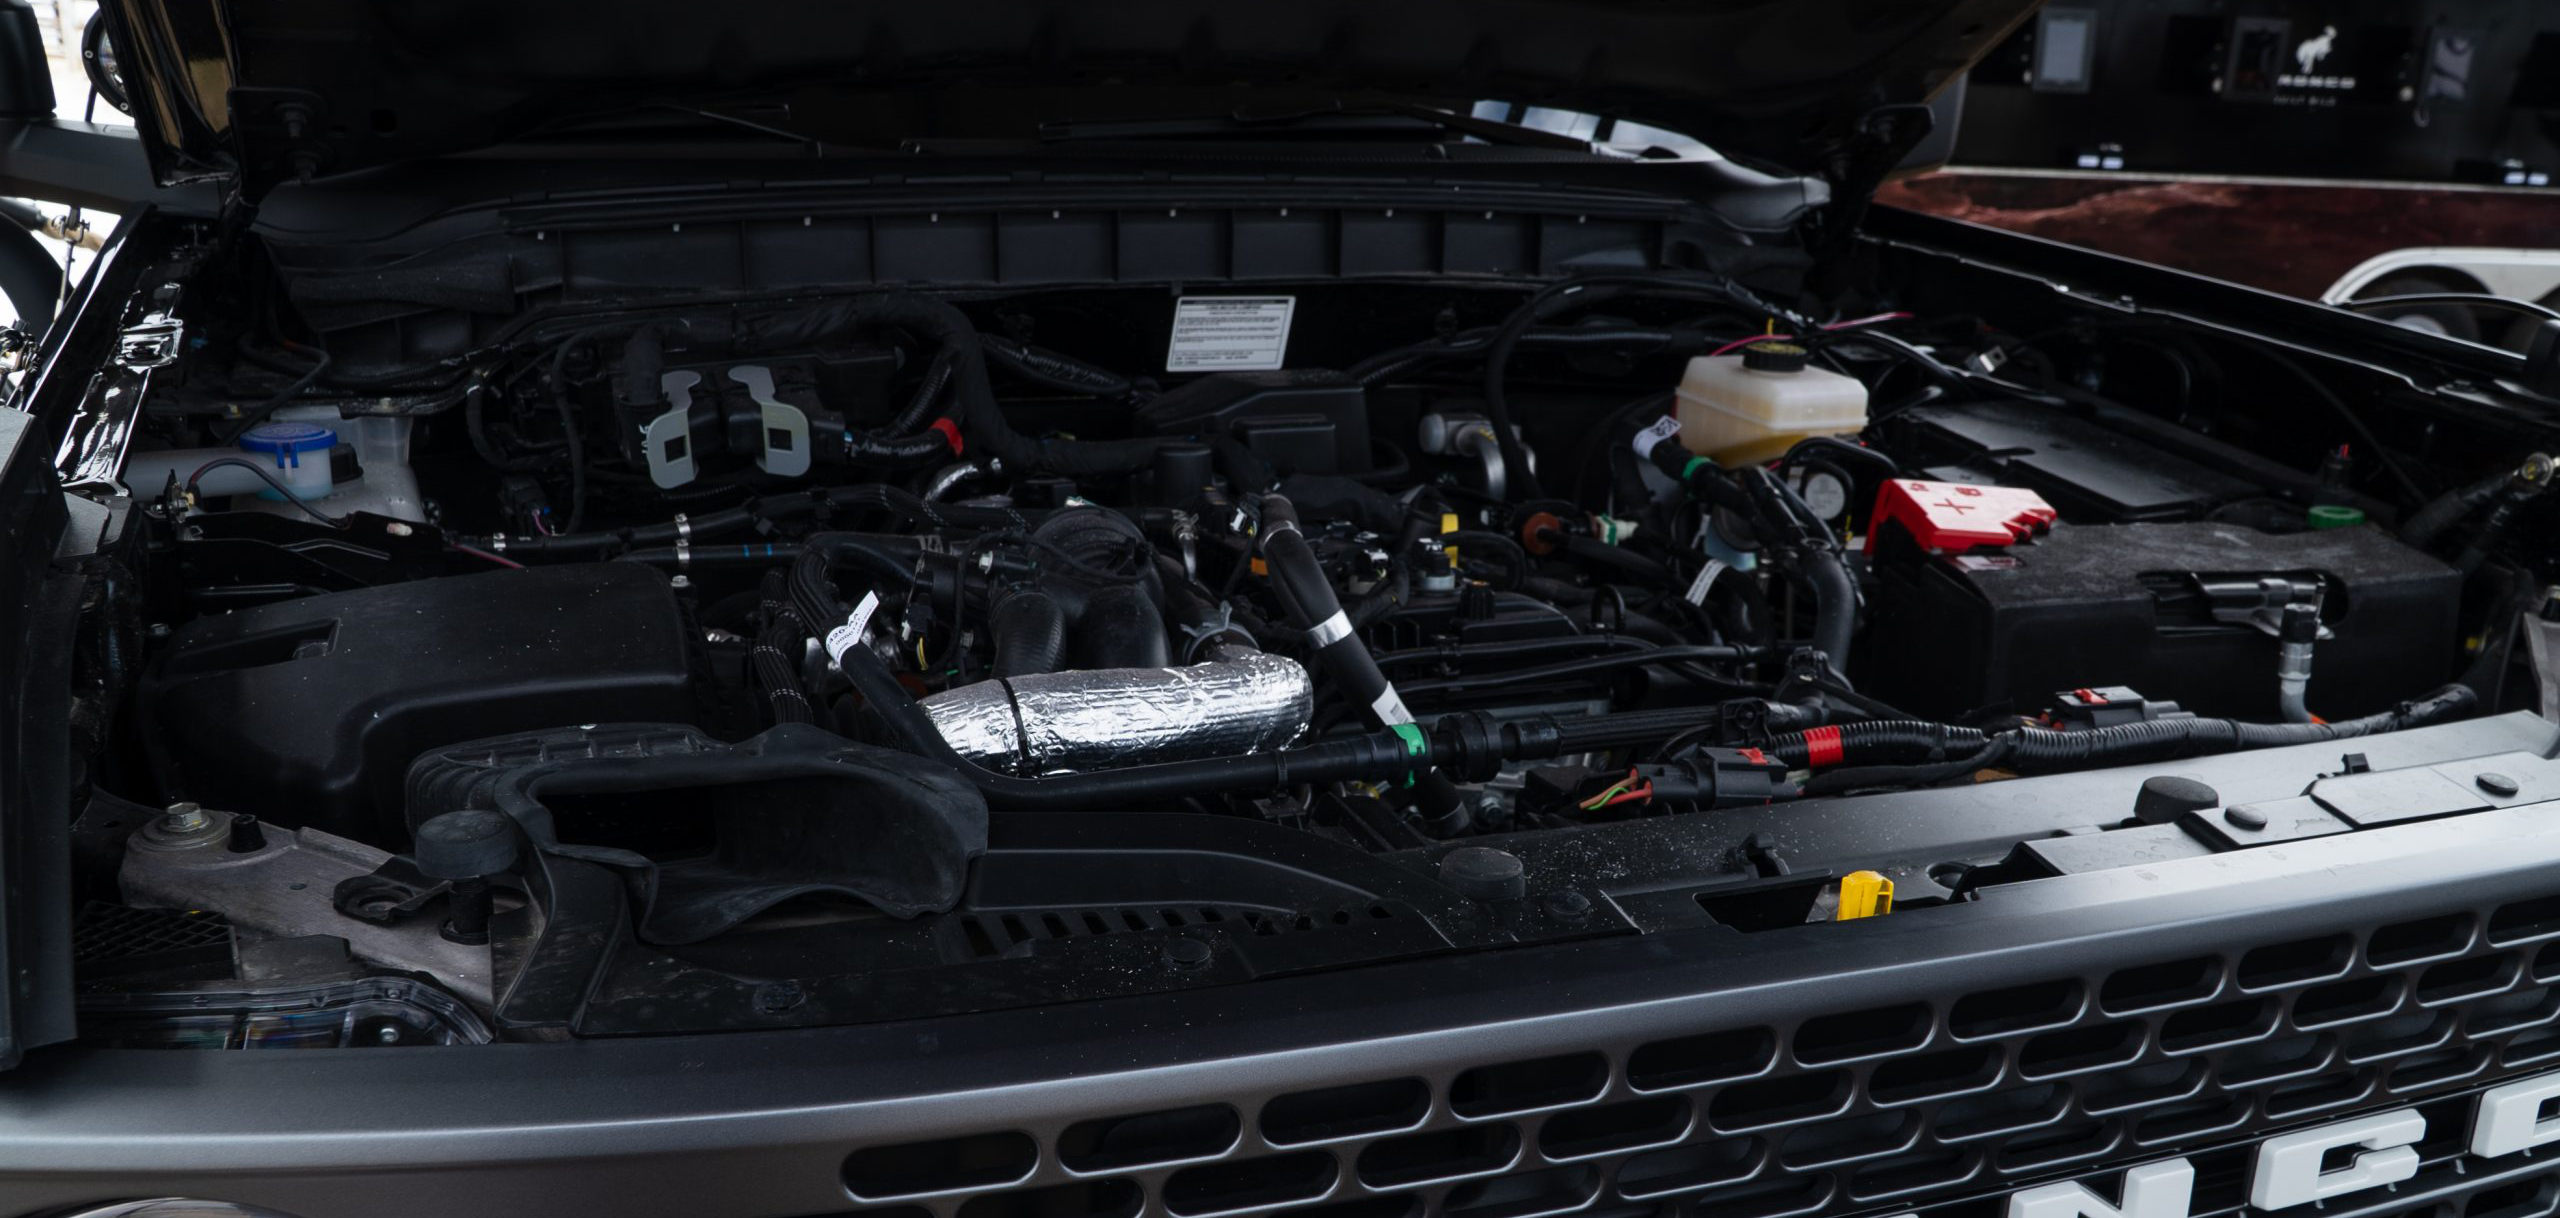 The Recommended Fluids, Filters, and Components of the 2021 Ford Bronco